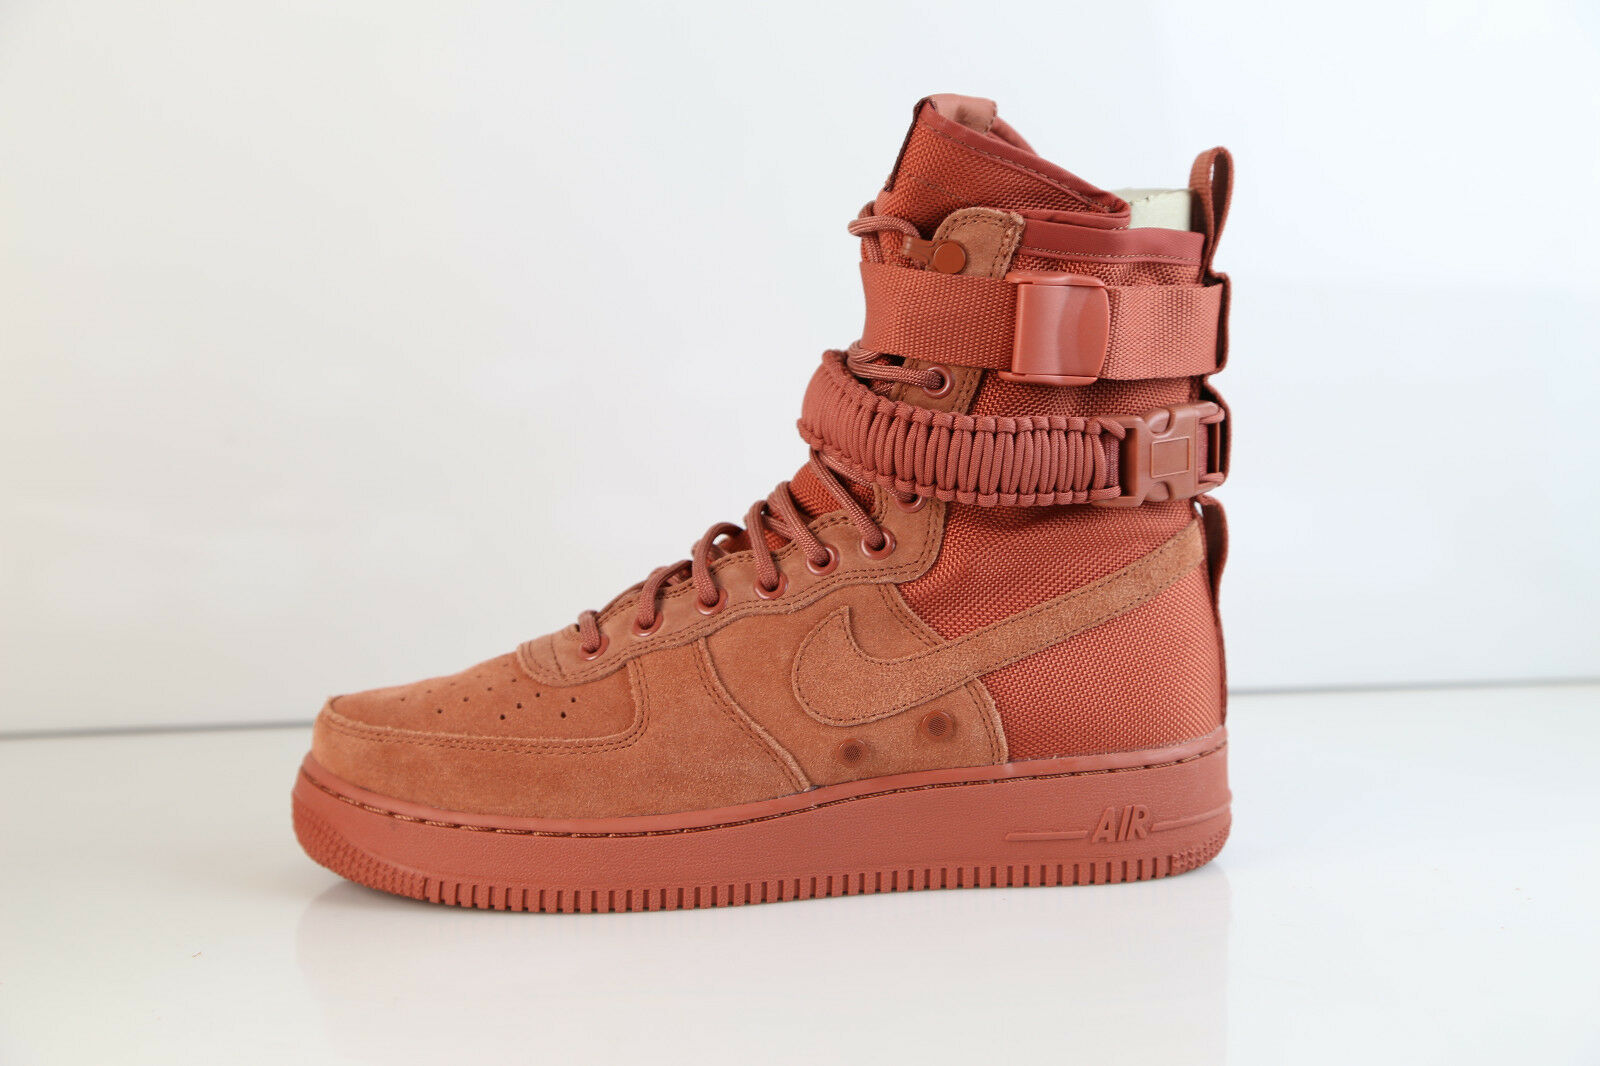 Nike SF AF1 Dusty Peach Suede Special 864024-204 9 - 12 Special Suede Air Force 1 2ed8f0